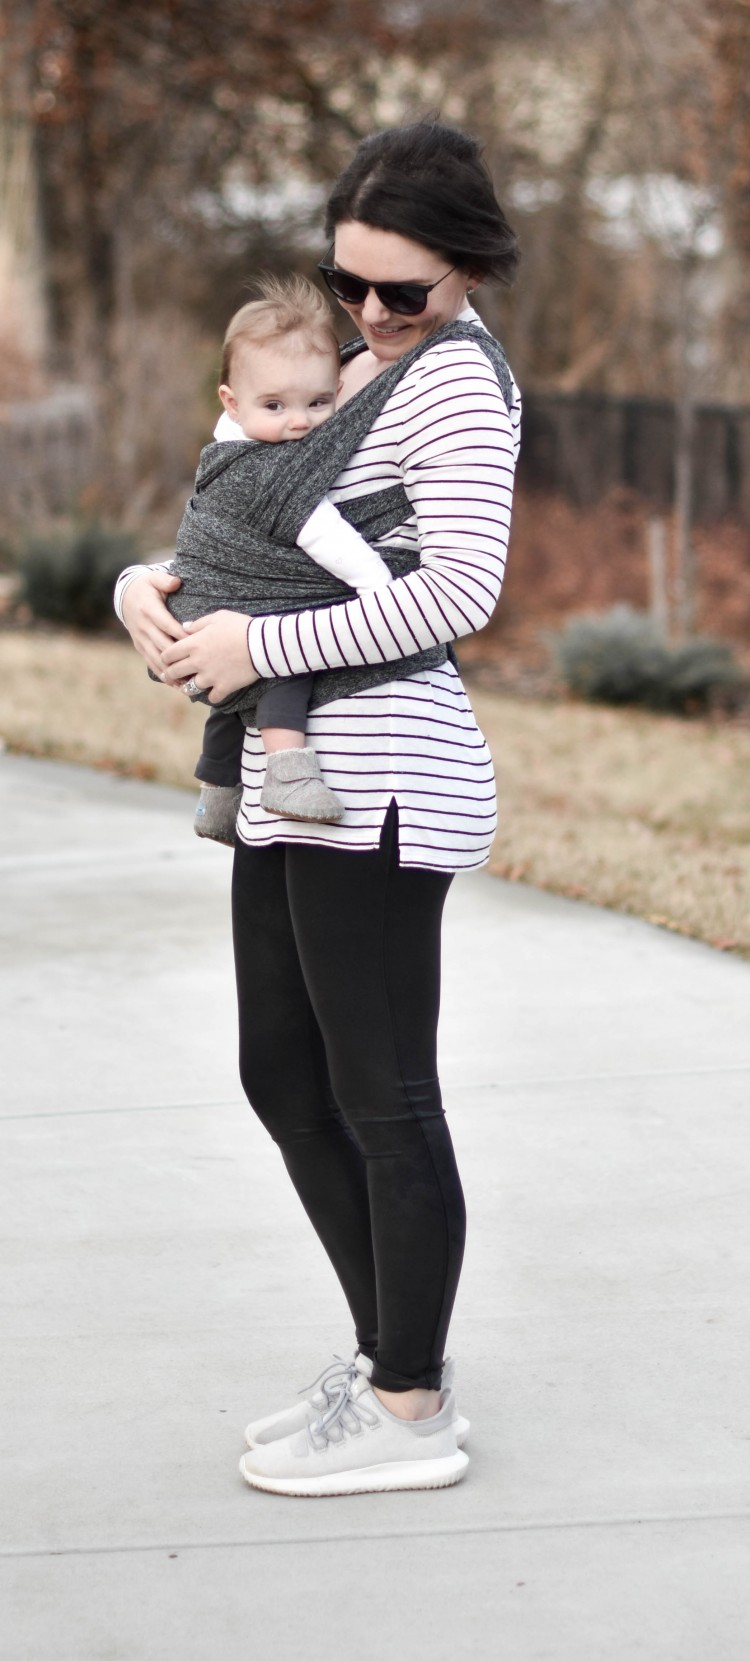 must have postpartum outfit - spanx, sneakers, stripes & sunnies